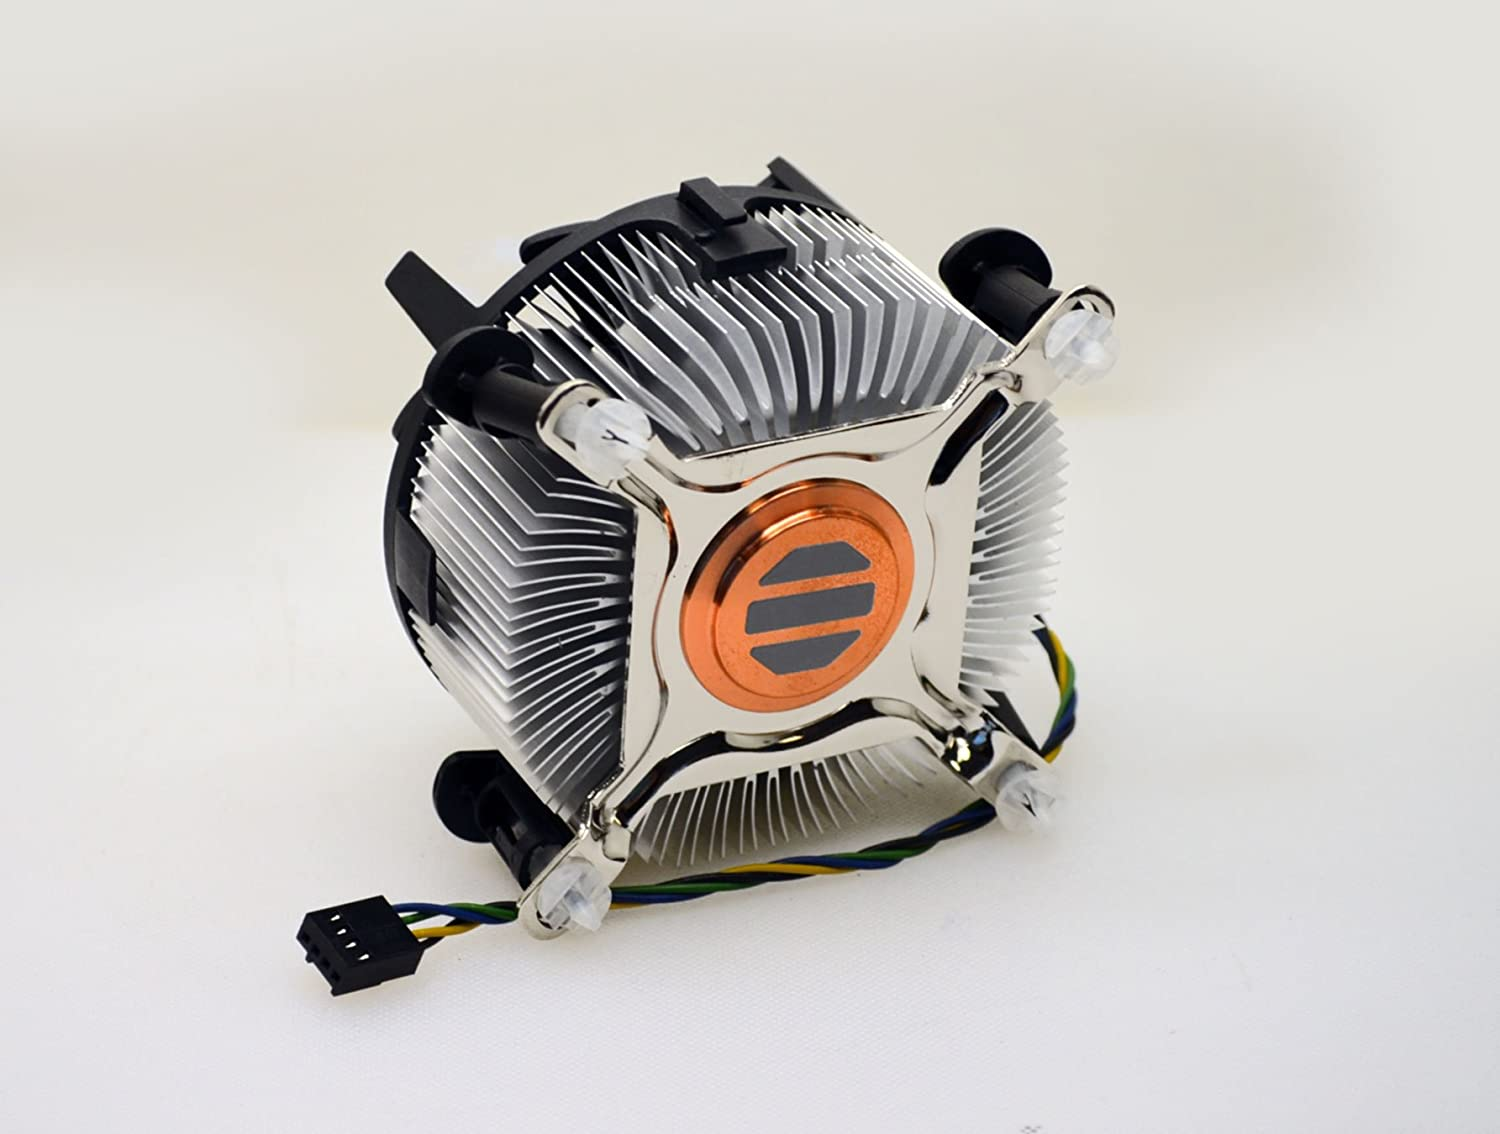 Foxconn 3U Heavy Duty 35MM Copper Core Heat Sink Cooling Fan for 8th Generation Intel i7 Processors 8700T / 8700K / 8700 / 8060K